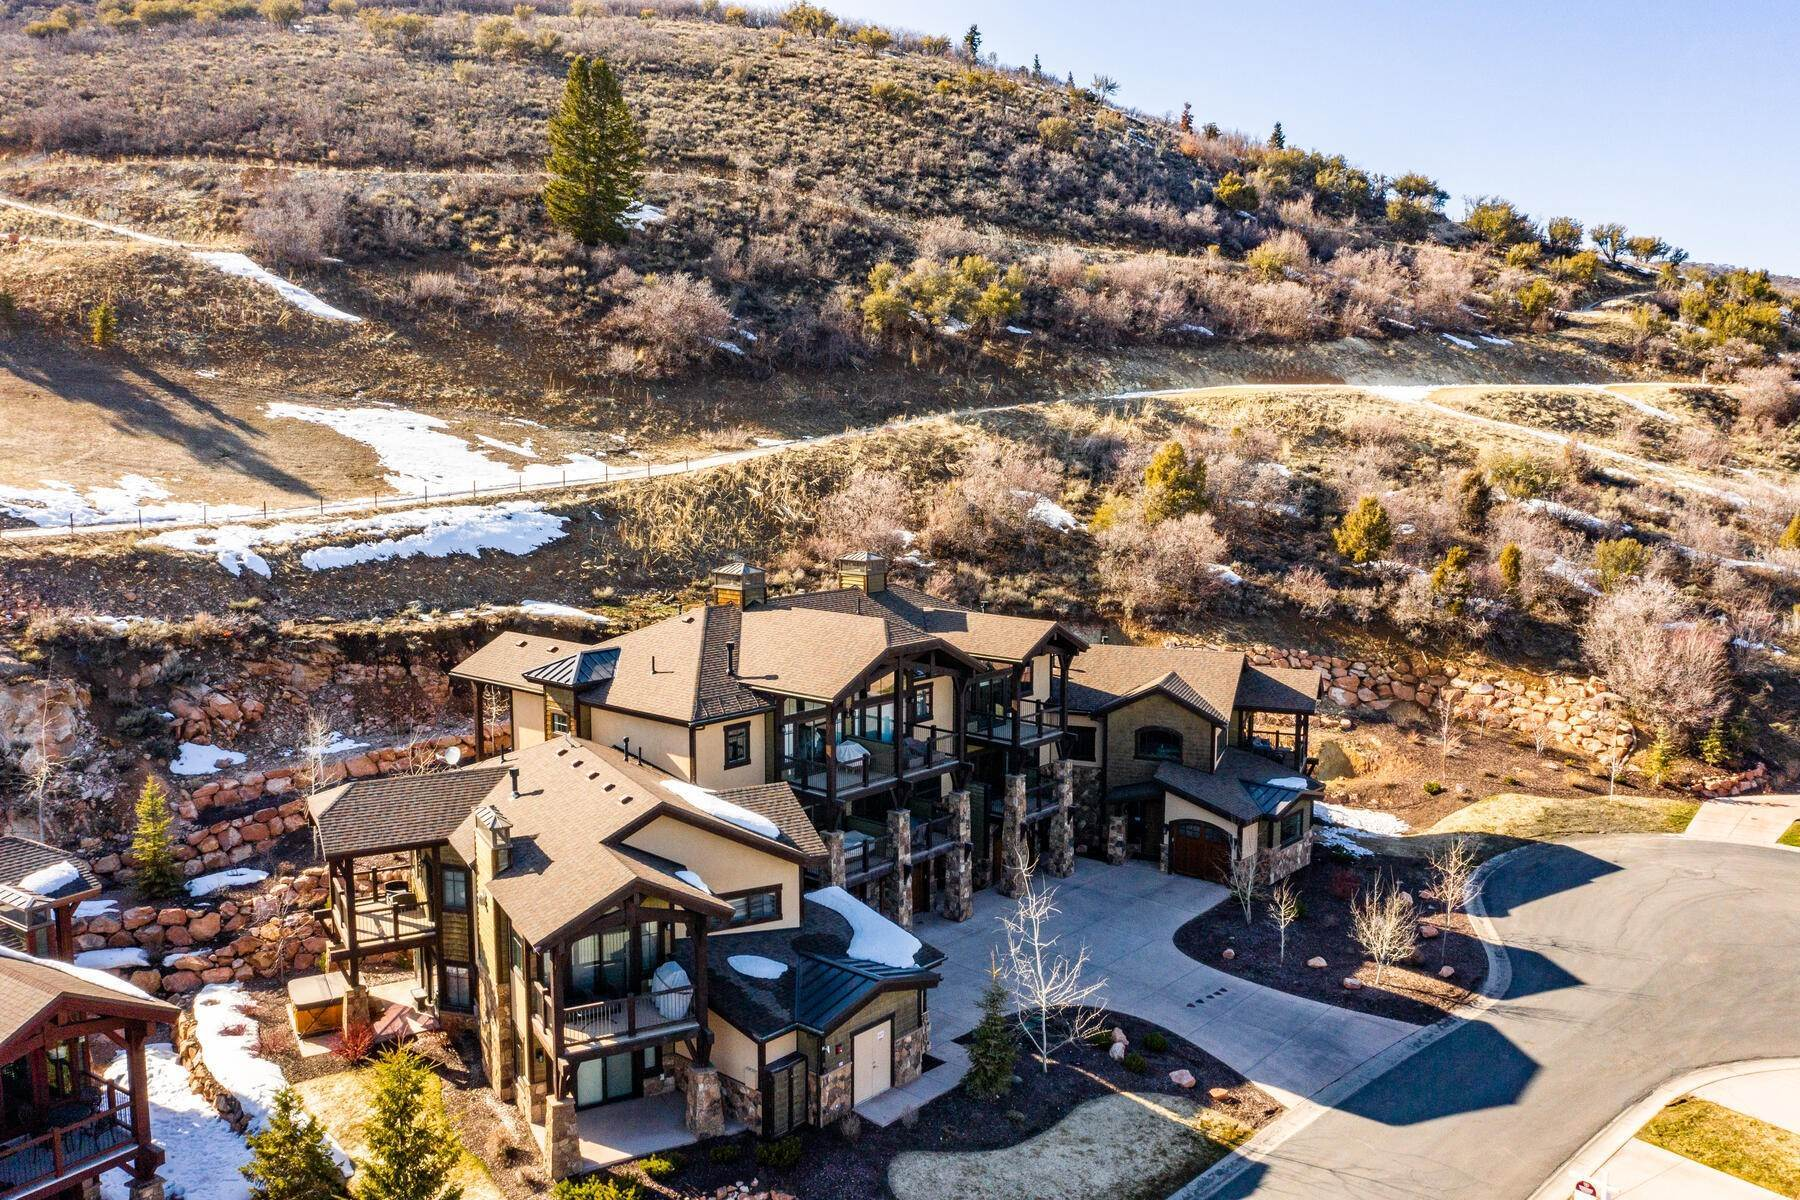 29. townhouses for Sale at Walk to Skiing from this Turn-Key Canyons Village Townhome 4221 Fairway Lane, D-4 Park City, Utah 84098 United States